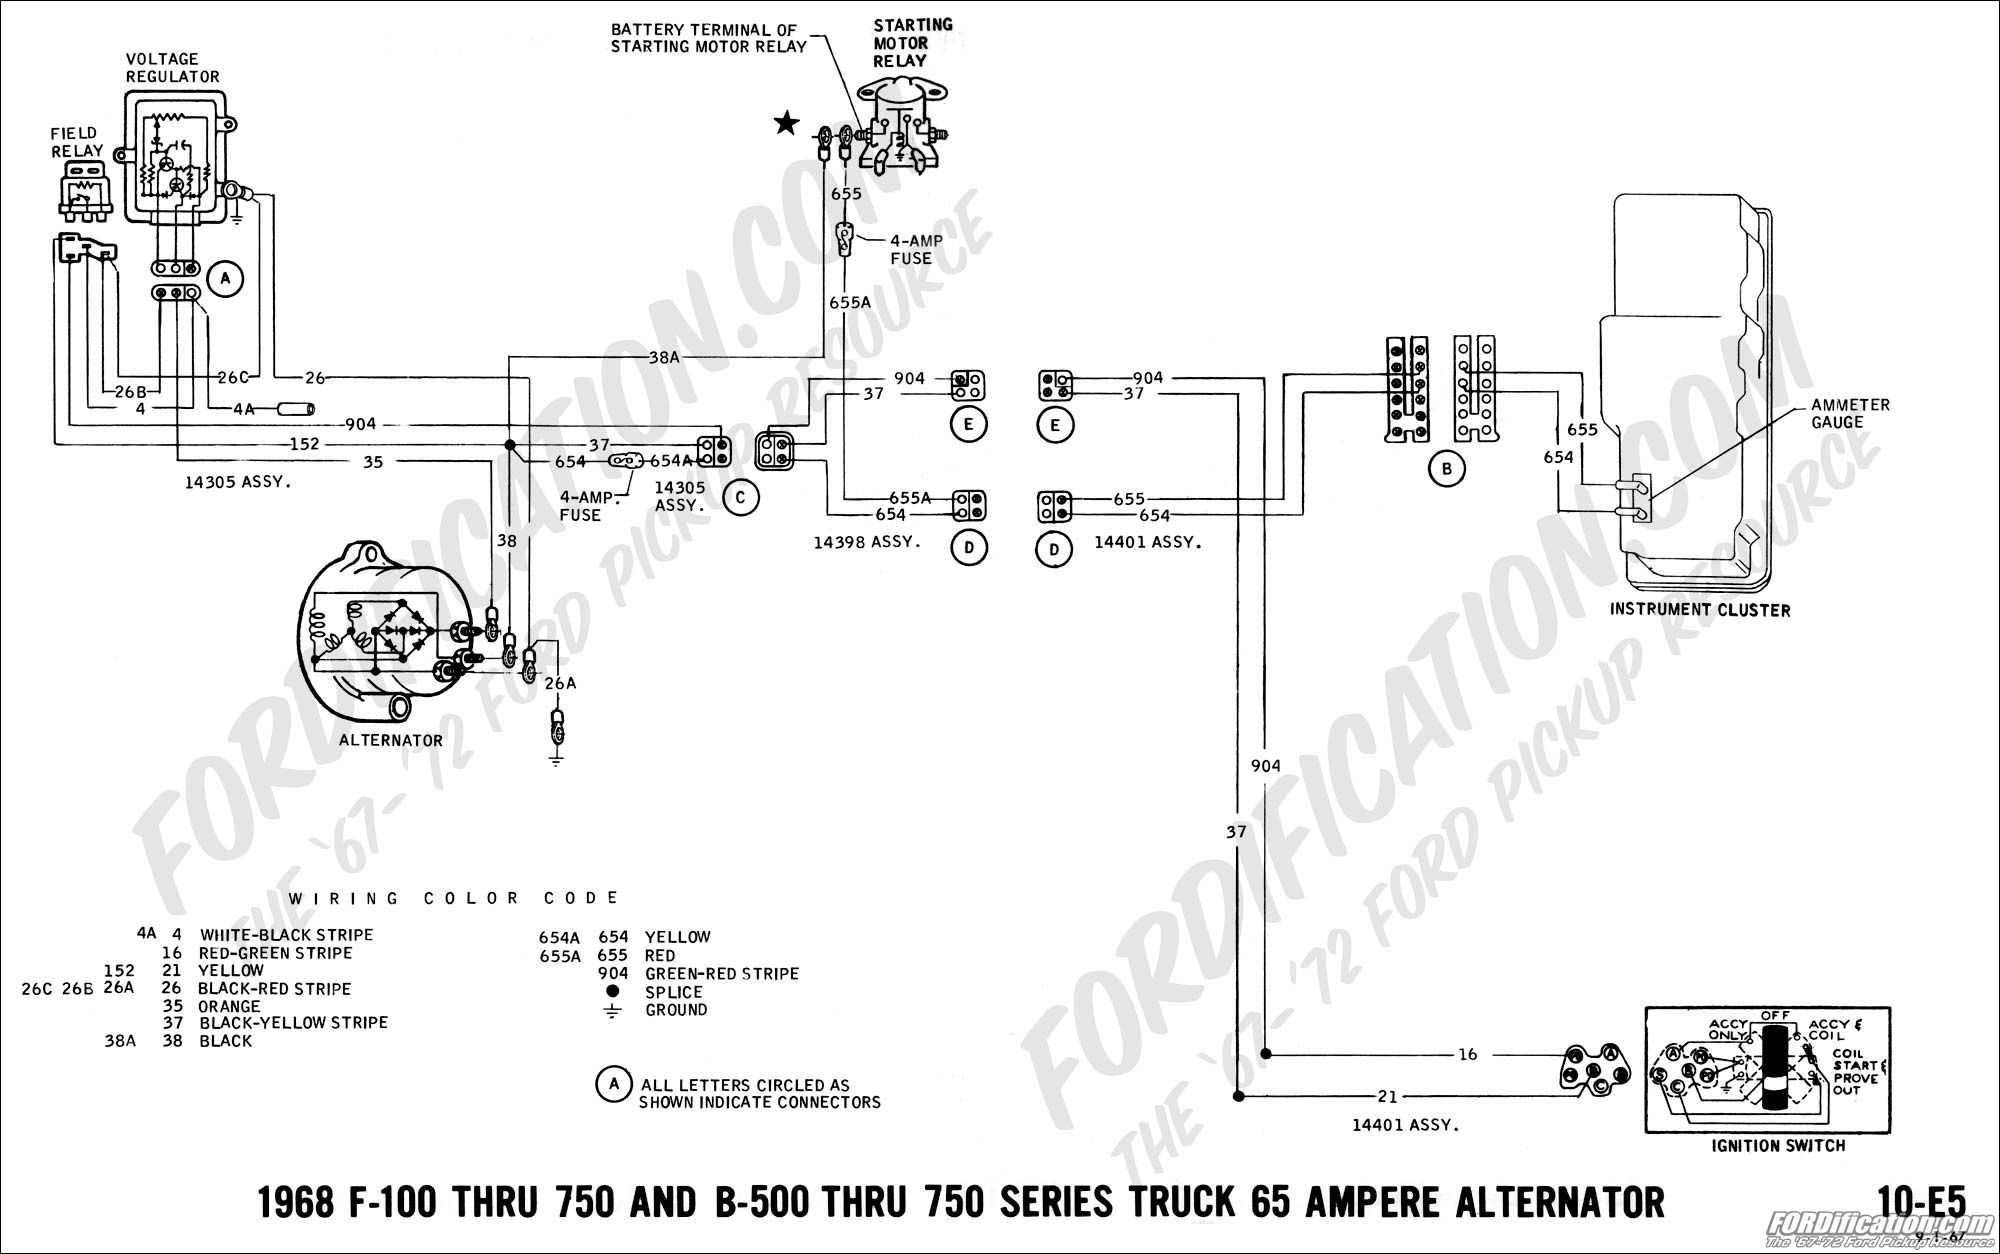 1969 Ford Truck Wiring Diagram Original F100 F250 F350 F1000 Pickup - Wiring  Diagram Recent site-grand - site-grand.cosavedereanapoli.it | 1969 Ford F150 Wiring Diagram |  | site-grand.cosavedereanapoli.it